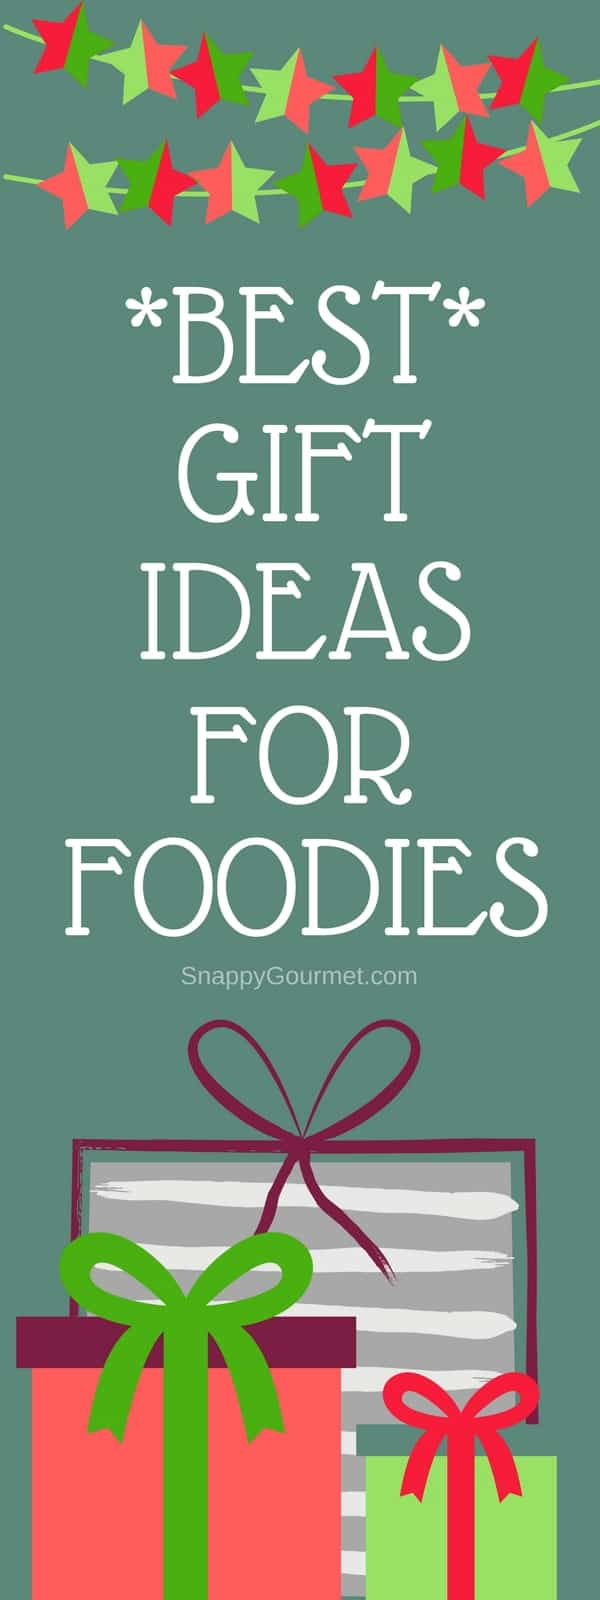 12 Days of Christmas Gift Ideas for all the foodies in your life! Some of the best foodie gifts including candy gift ideas, experience gift ideas, kitchen gadget gift ideas, and more! #Christmas #Foodie #Gifts #SnappyGourmet